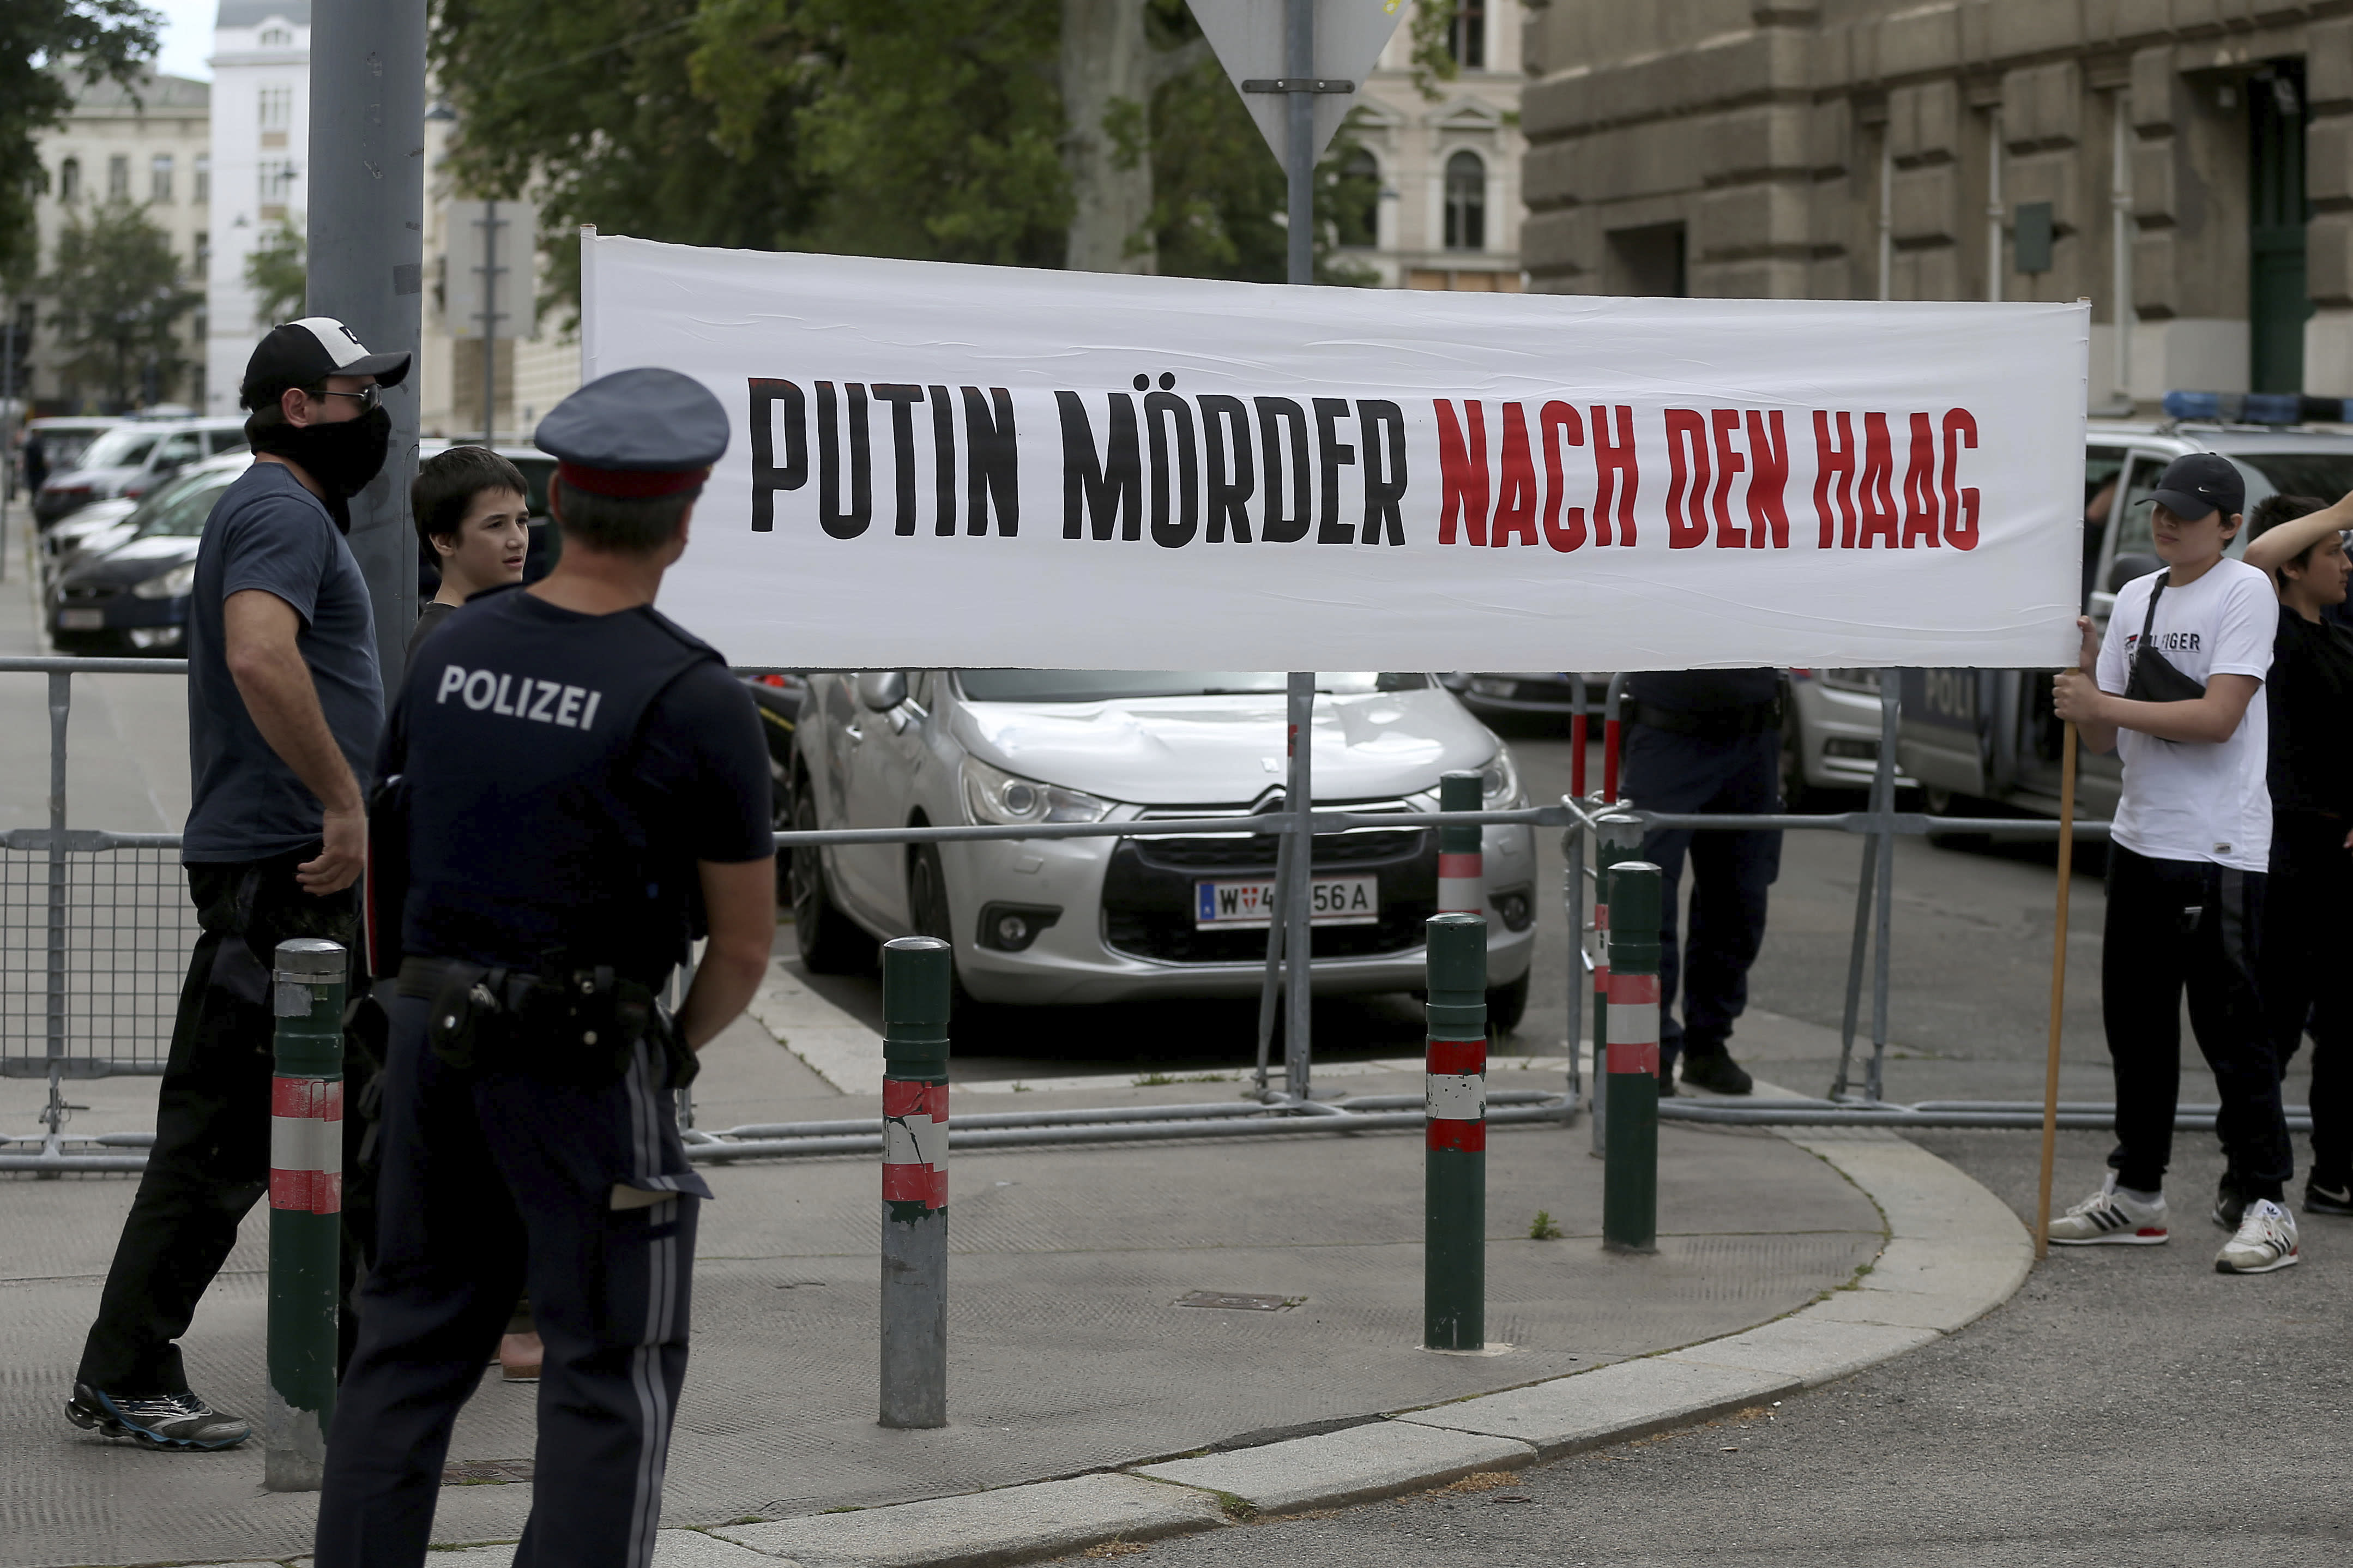 """Chechen protesters hold a banner that reads: """"Putin murderer to The Hague"""" outside of the Russian embassy in Vienna, Austria, Tuesday, July 7, 2020. A 43-year-old ethnic Chechen who had lived in Austria for more than a decade was killed over the weekend. (AP Photo/Ronald Zak)"""